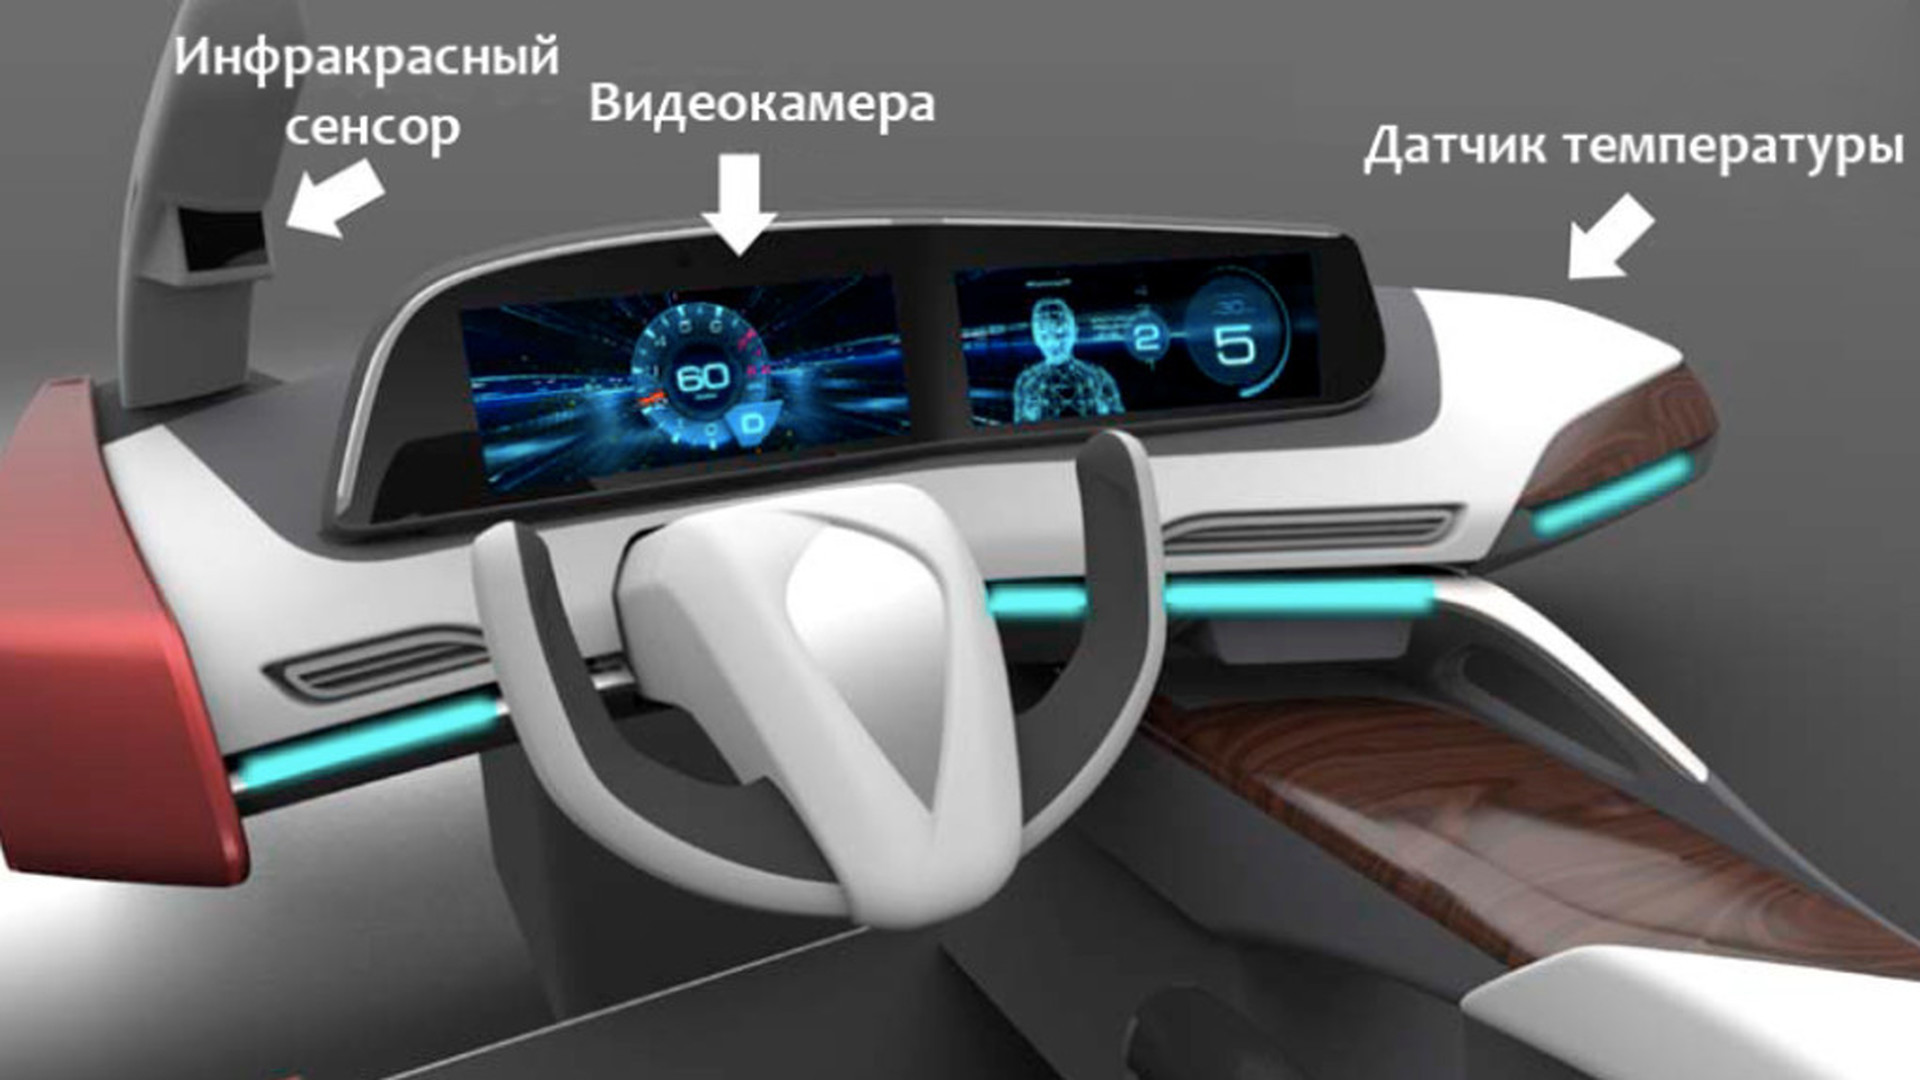 Russian scientists have created an application that will not let you fall asleep while driving